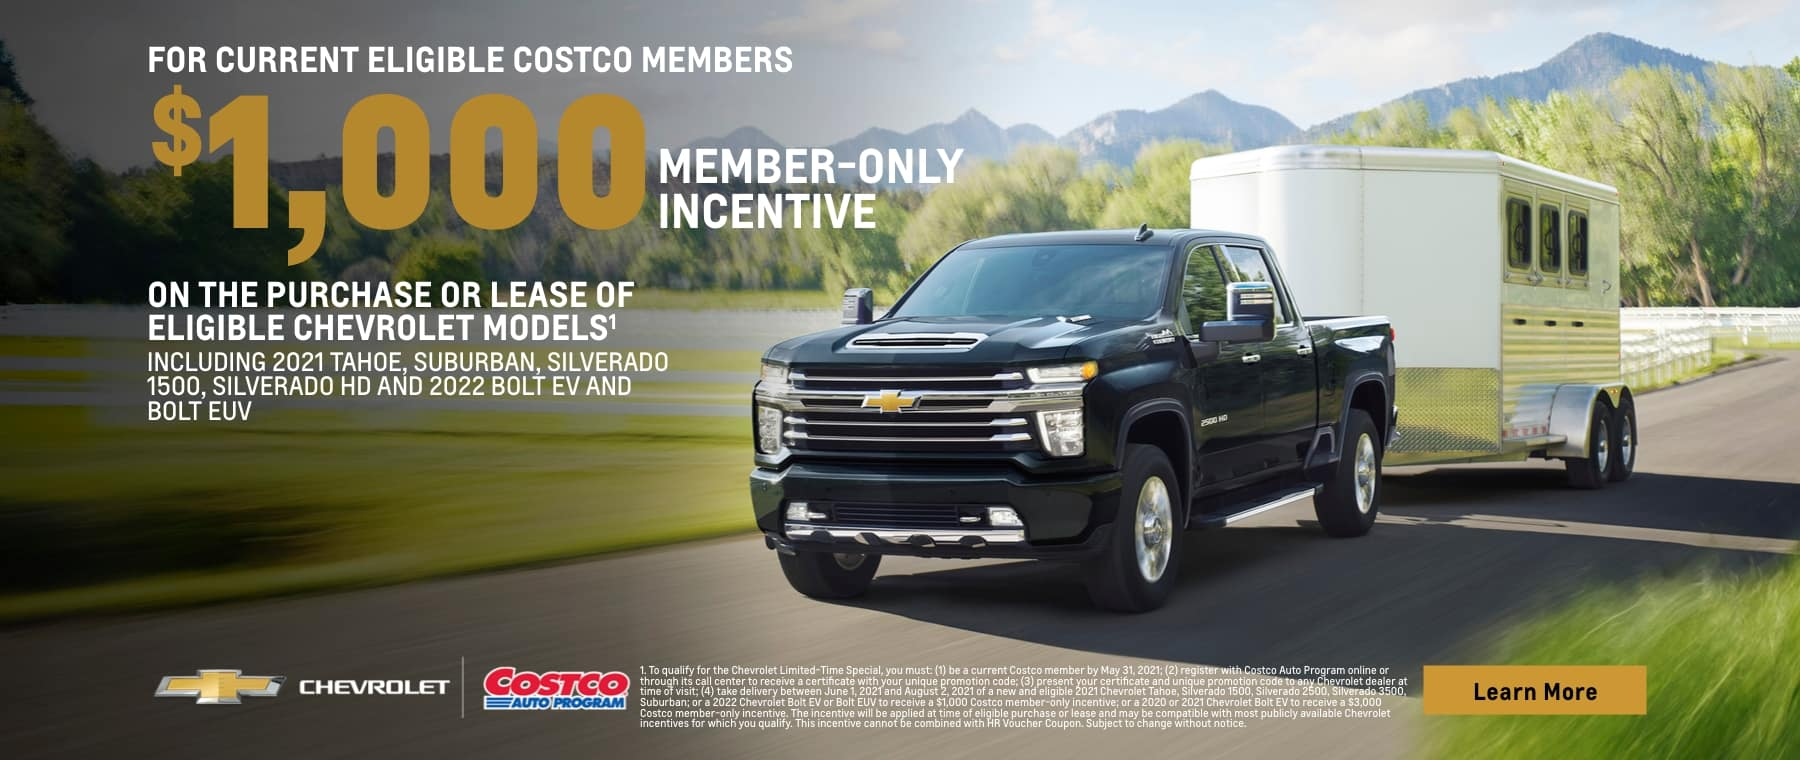 for current eligible costco members $1,000 member-only incentive on the purchase or lease of eligible chevrolet models including 2021 tahoe, suburban, silverado 1500, silverado hd and 2022 bolt ev and bolt euv chevrolet costco auto program learn more 1. to qualify for the chevrolet limited-time special, you must: (1) be a current costco member by may 31, 2021; (2) register with costco auto program online or through its call center to receive a certificate with your unique promotion code; (3) present your certificate and unique promotion code to any chevrolet dealer at time of visit; (4) take delivery between june 1, 2021 and august 2, 2021 of a new and eligible 2021 chevrolet tahoe, silverado 1500, silverado 2500, silverado 3500, suburban; or a 2022 chevrolet bolt ev or bolt euv to receive a $1,000 costco member-only incentive; or a 2020 or 2021 chevrolet bolt ev to receive a $3,000 costco member-only incentive. the incentive will be applied at time of eligible purchase or lease and may be compatible with most publicly available chevrolet incentives for which you qualify. this incentive cannot be combined with hr voucher coupon. subject to change without notice.